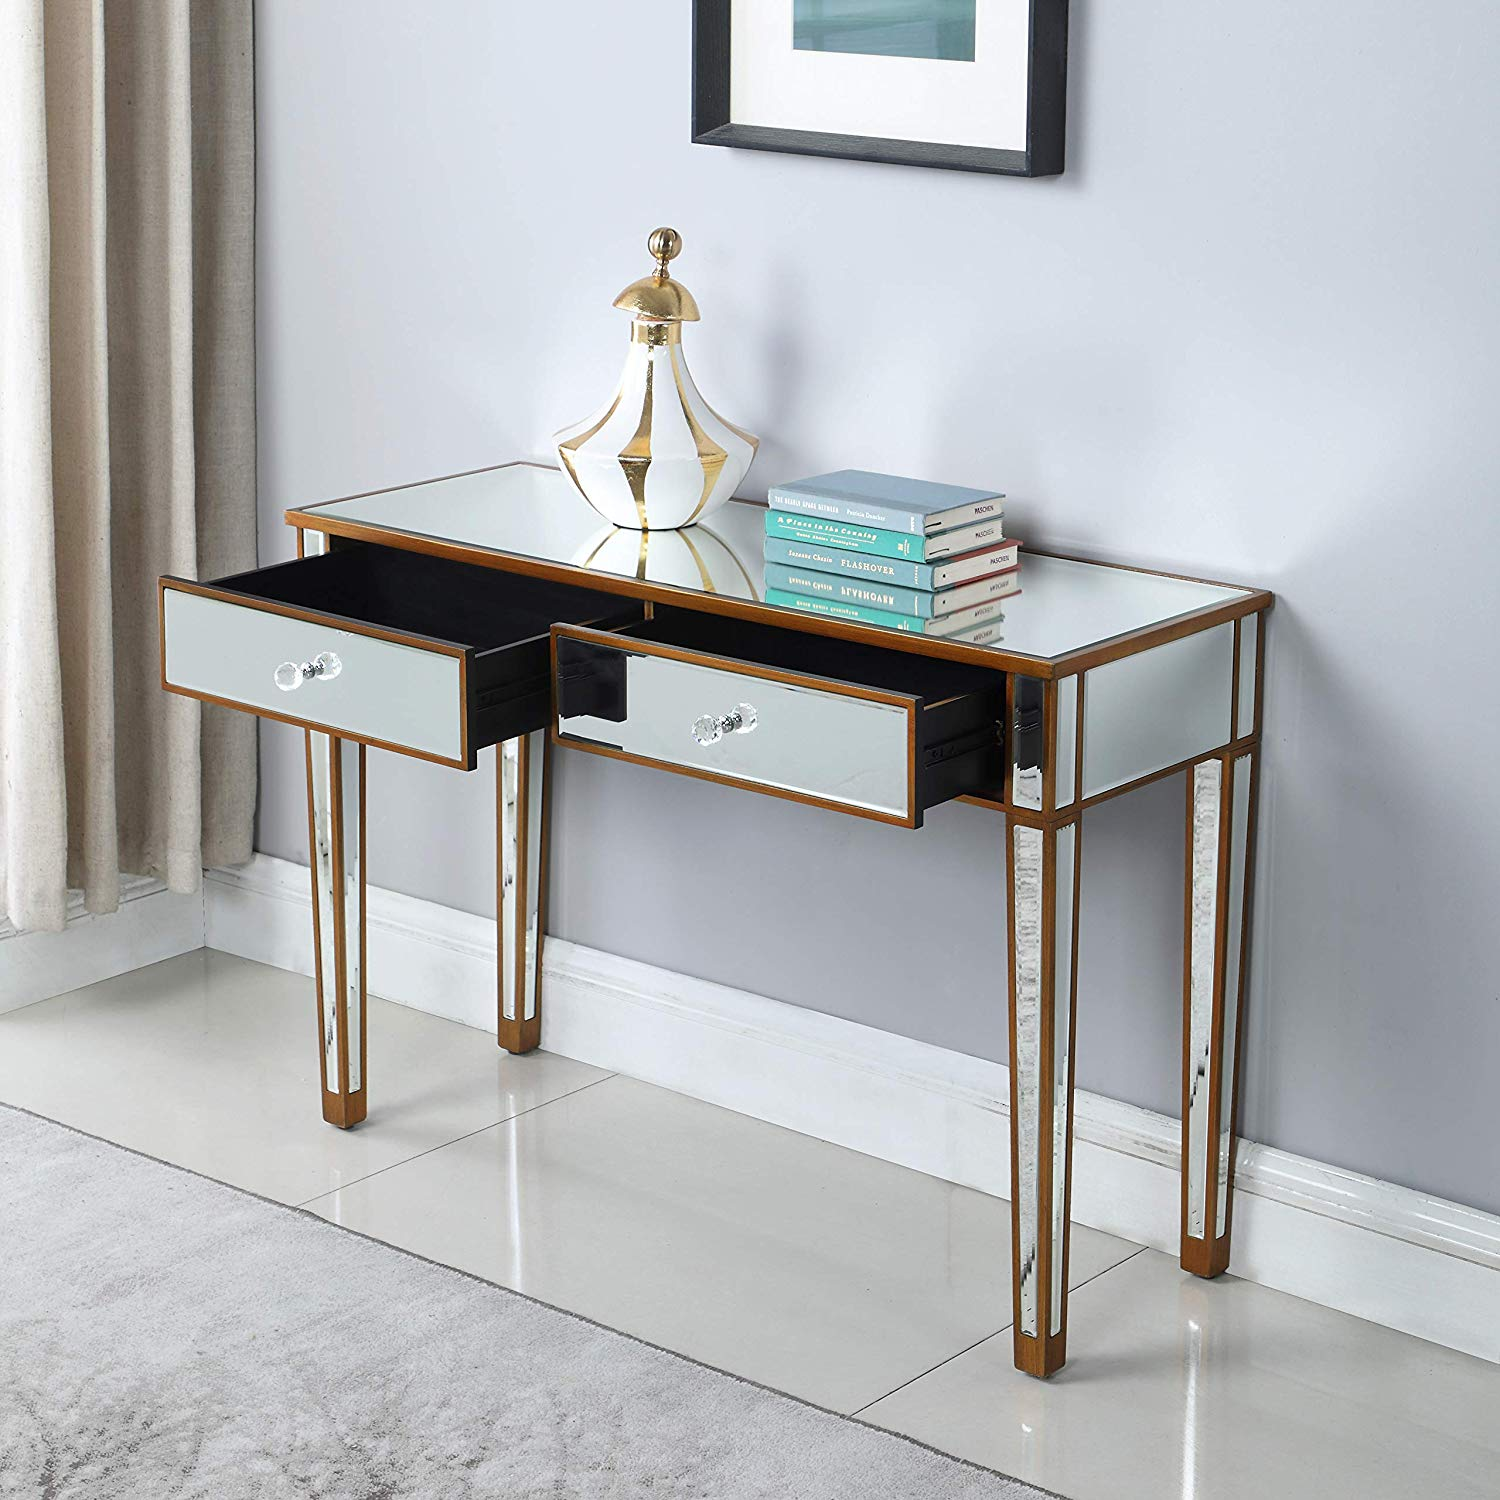 mirrored drawer media console table home makeup glass accent with desk vanity for women office writing smooth matte silver finish faux crystal nautical ceiling fans lights small